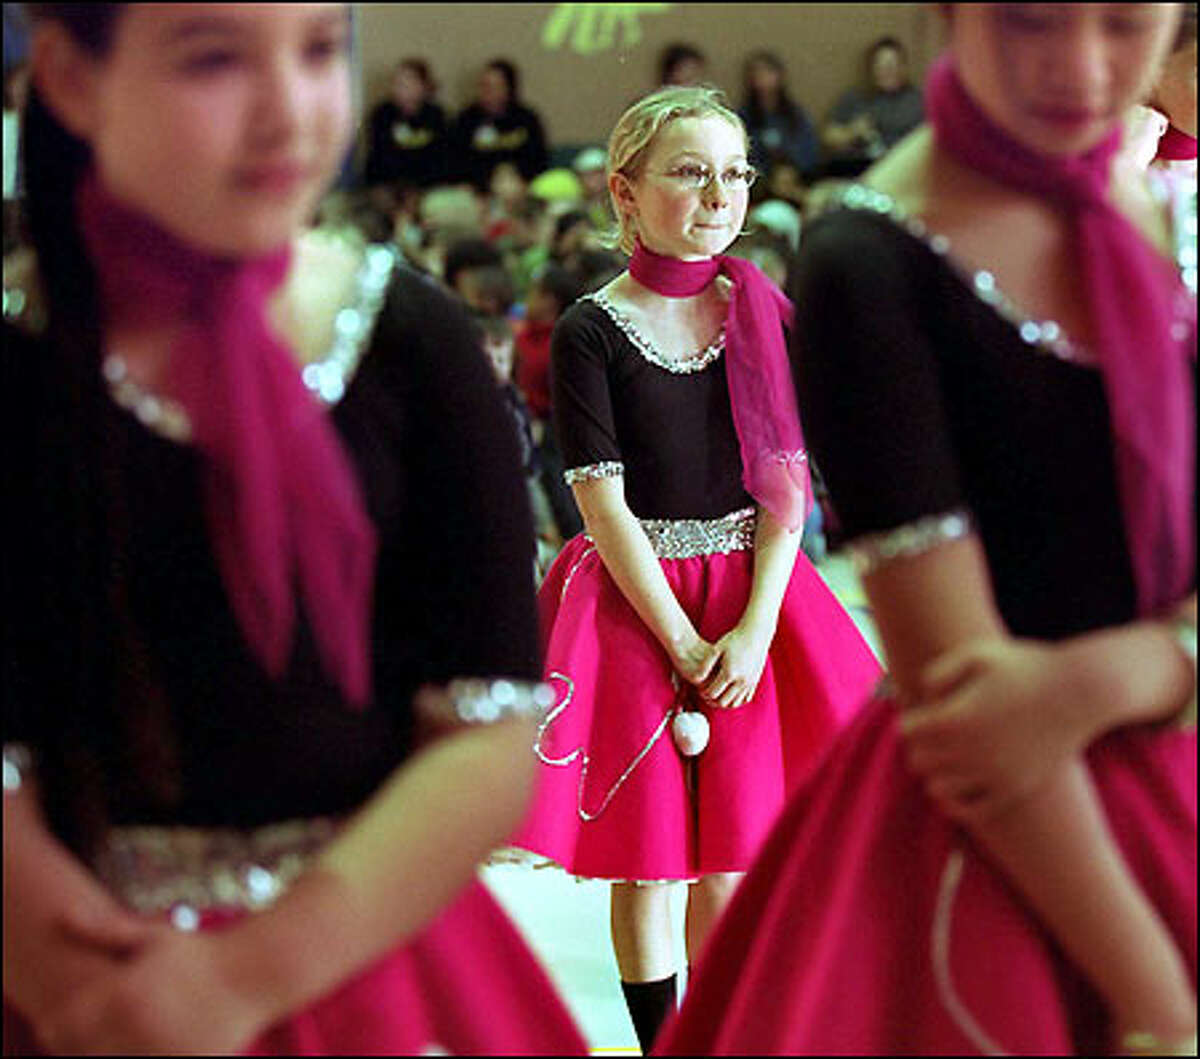 Barely able to contain herself, Miranda York, 10, awaits the start of her dance. She's framed between Anna Elberier, 9, left, and 10-year-old Heidi Saechao.